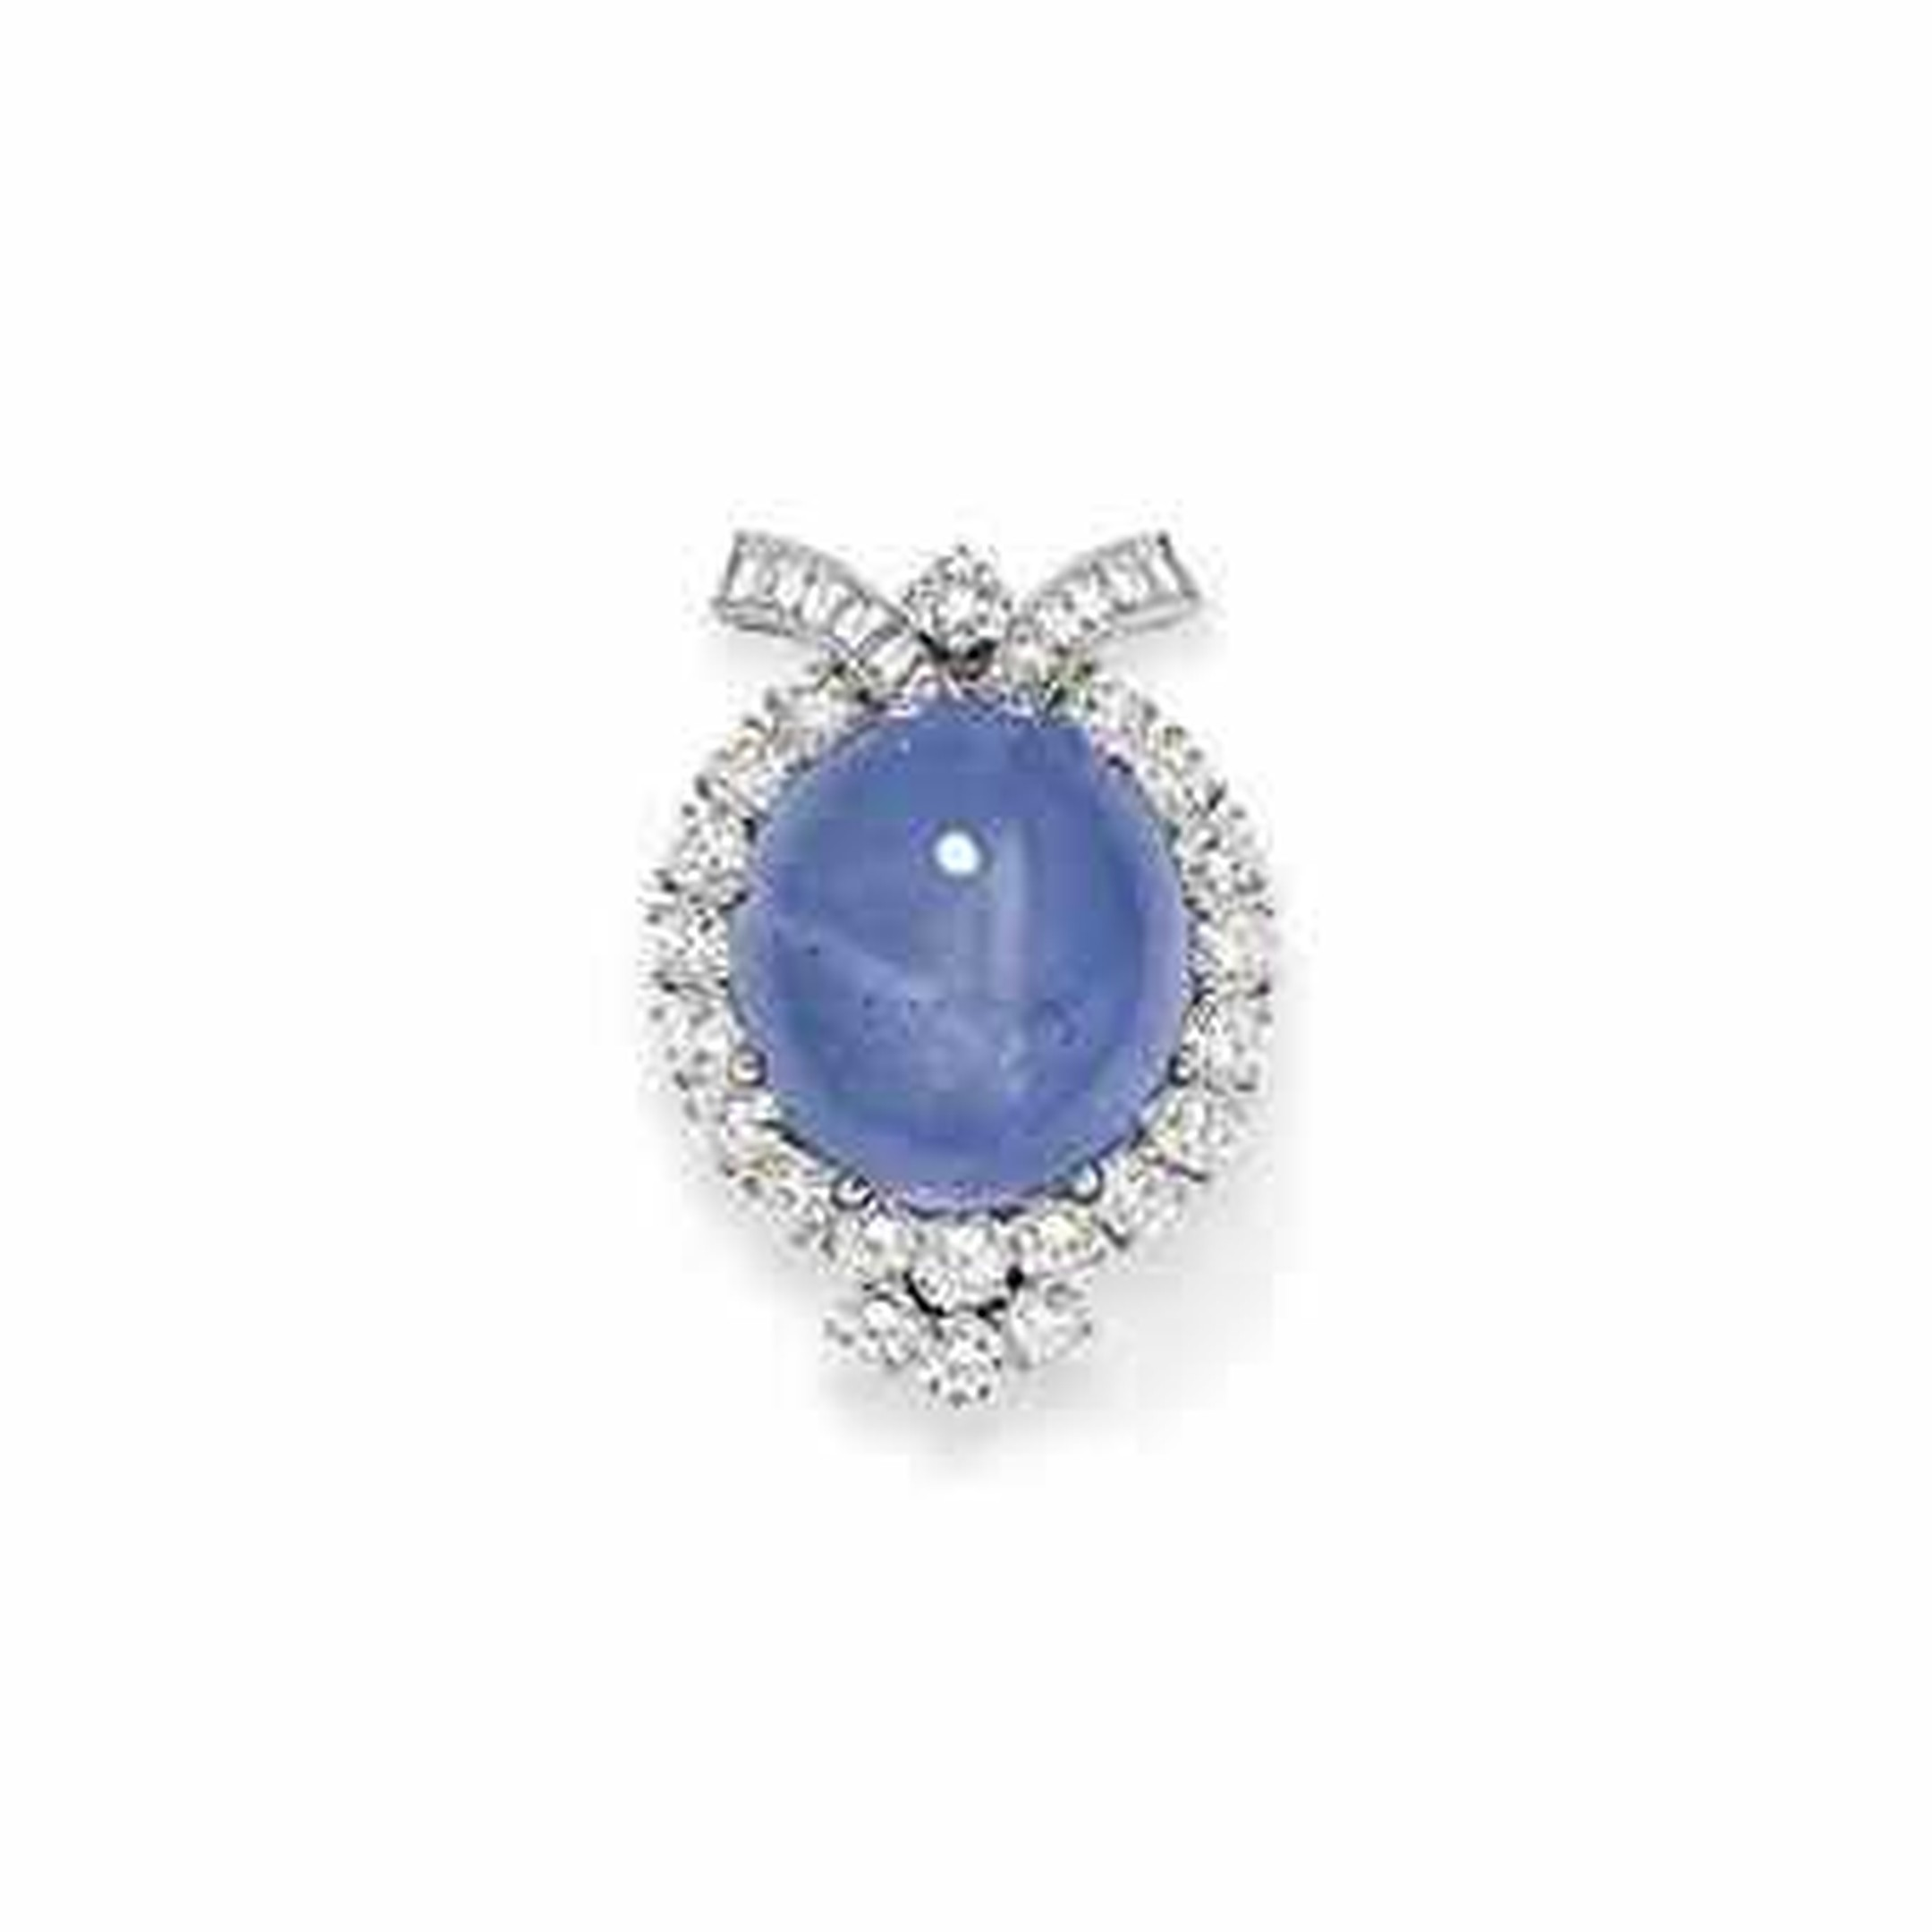 This Van Cleef & Arpels star sapphire and diamond brooch sold at Christie's for $32,000 in 2013.